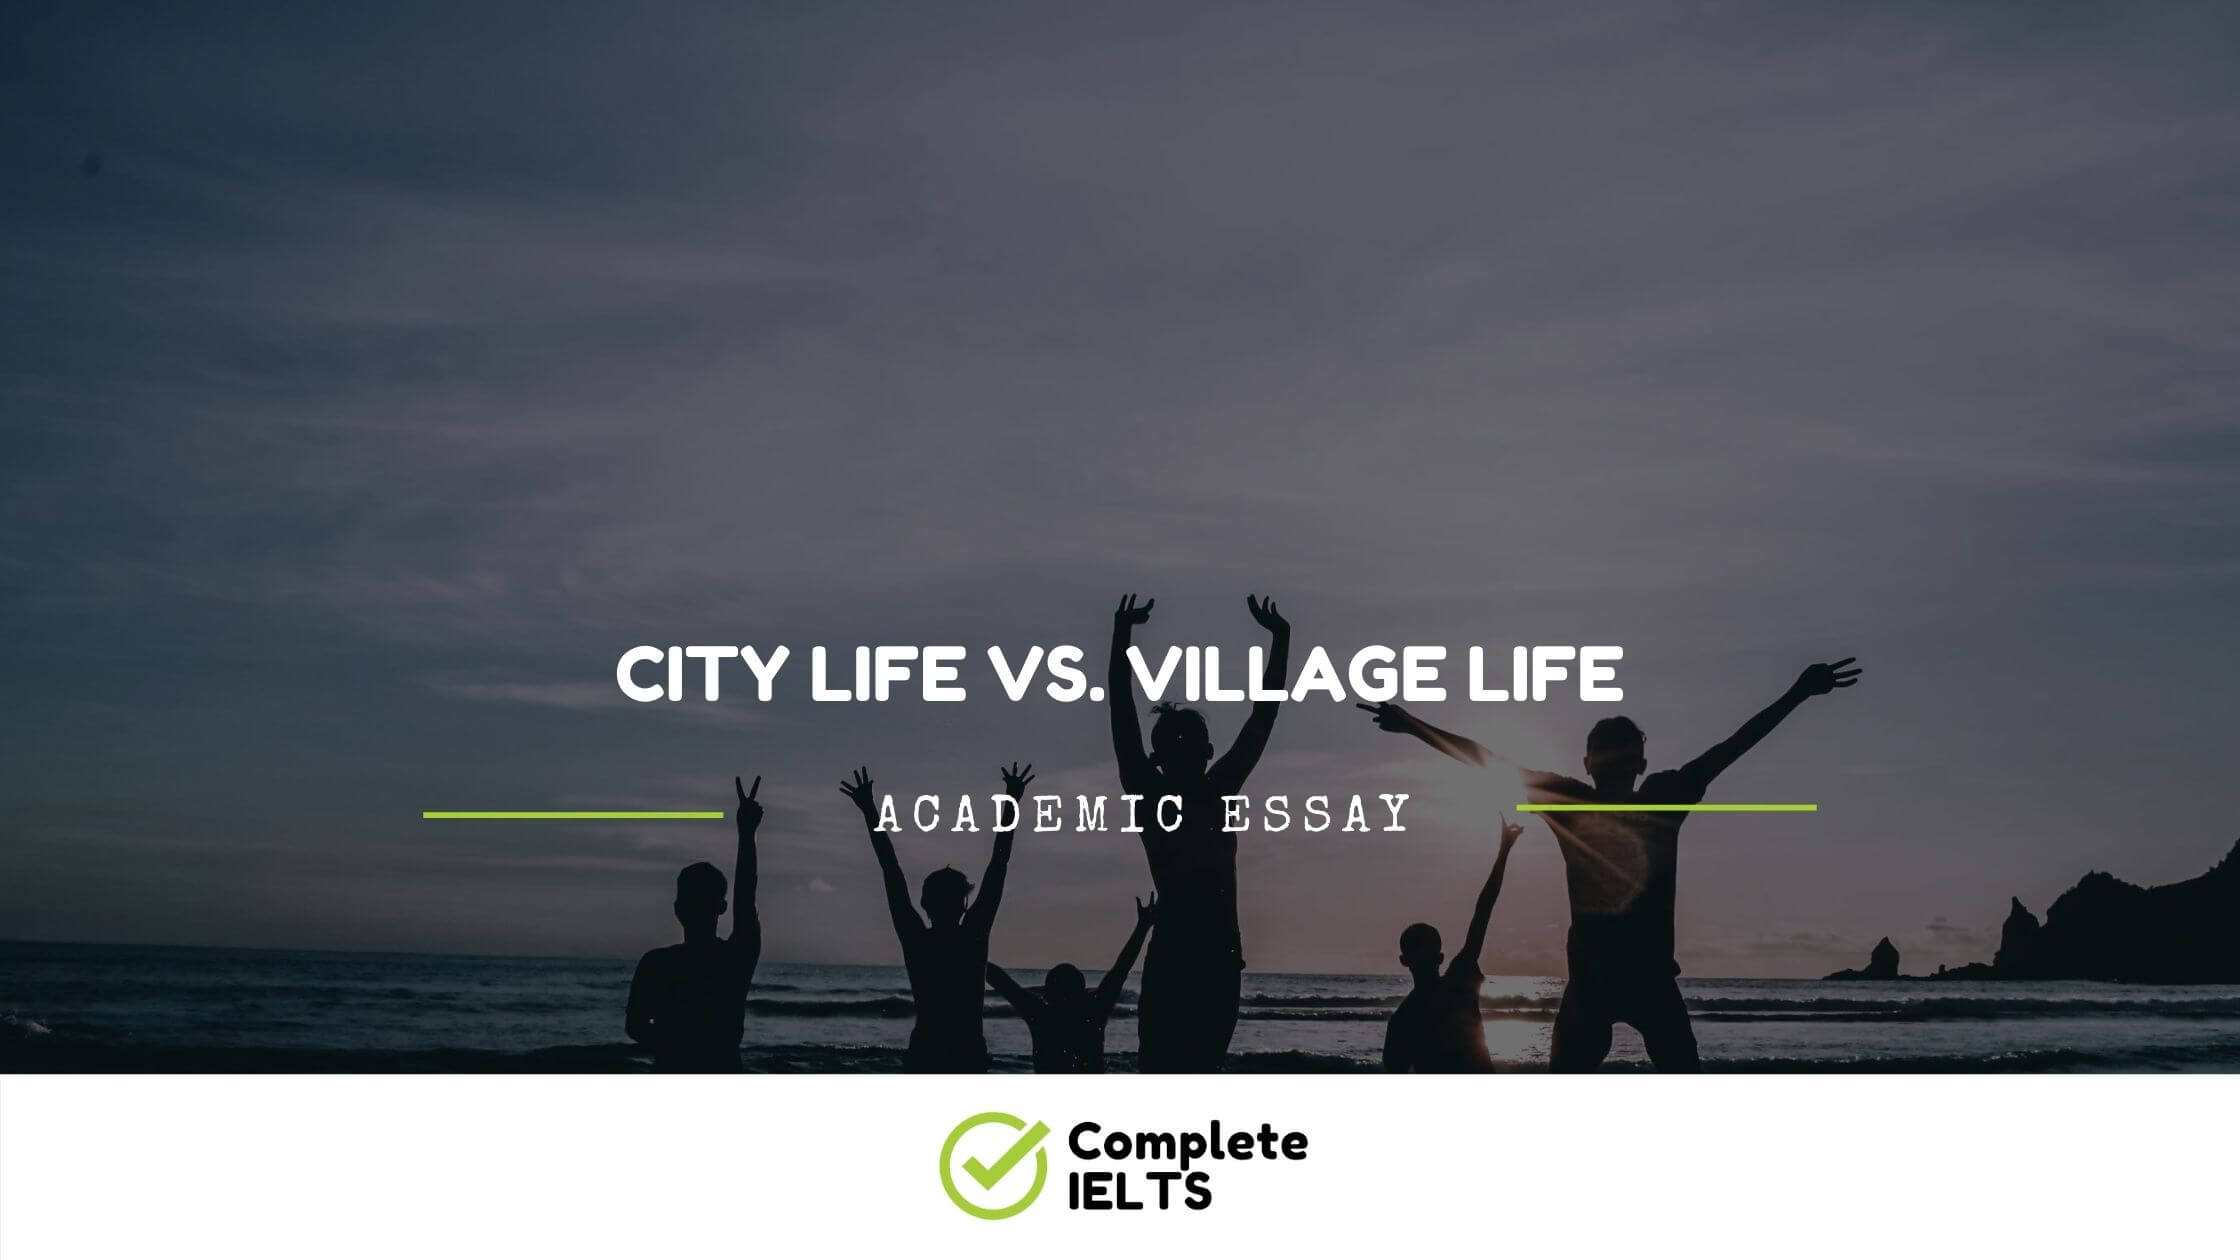 City life vs. village life Essay